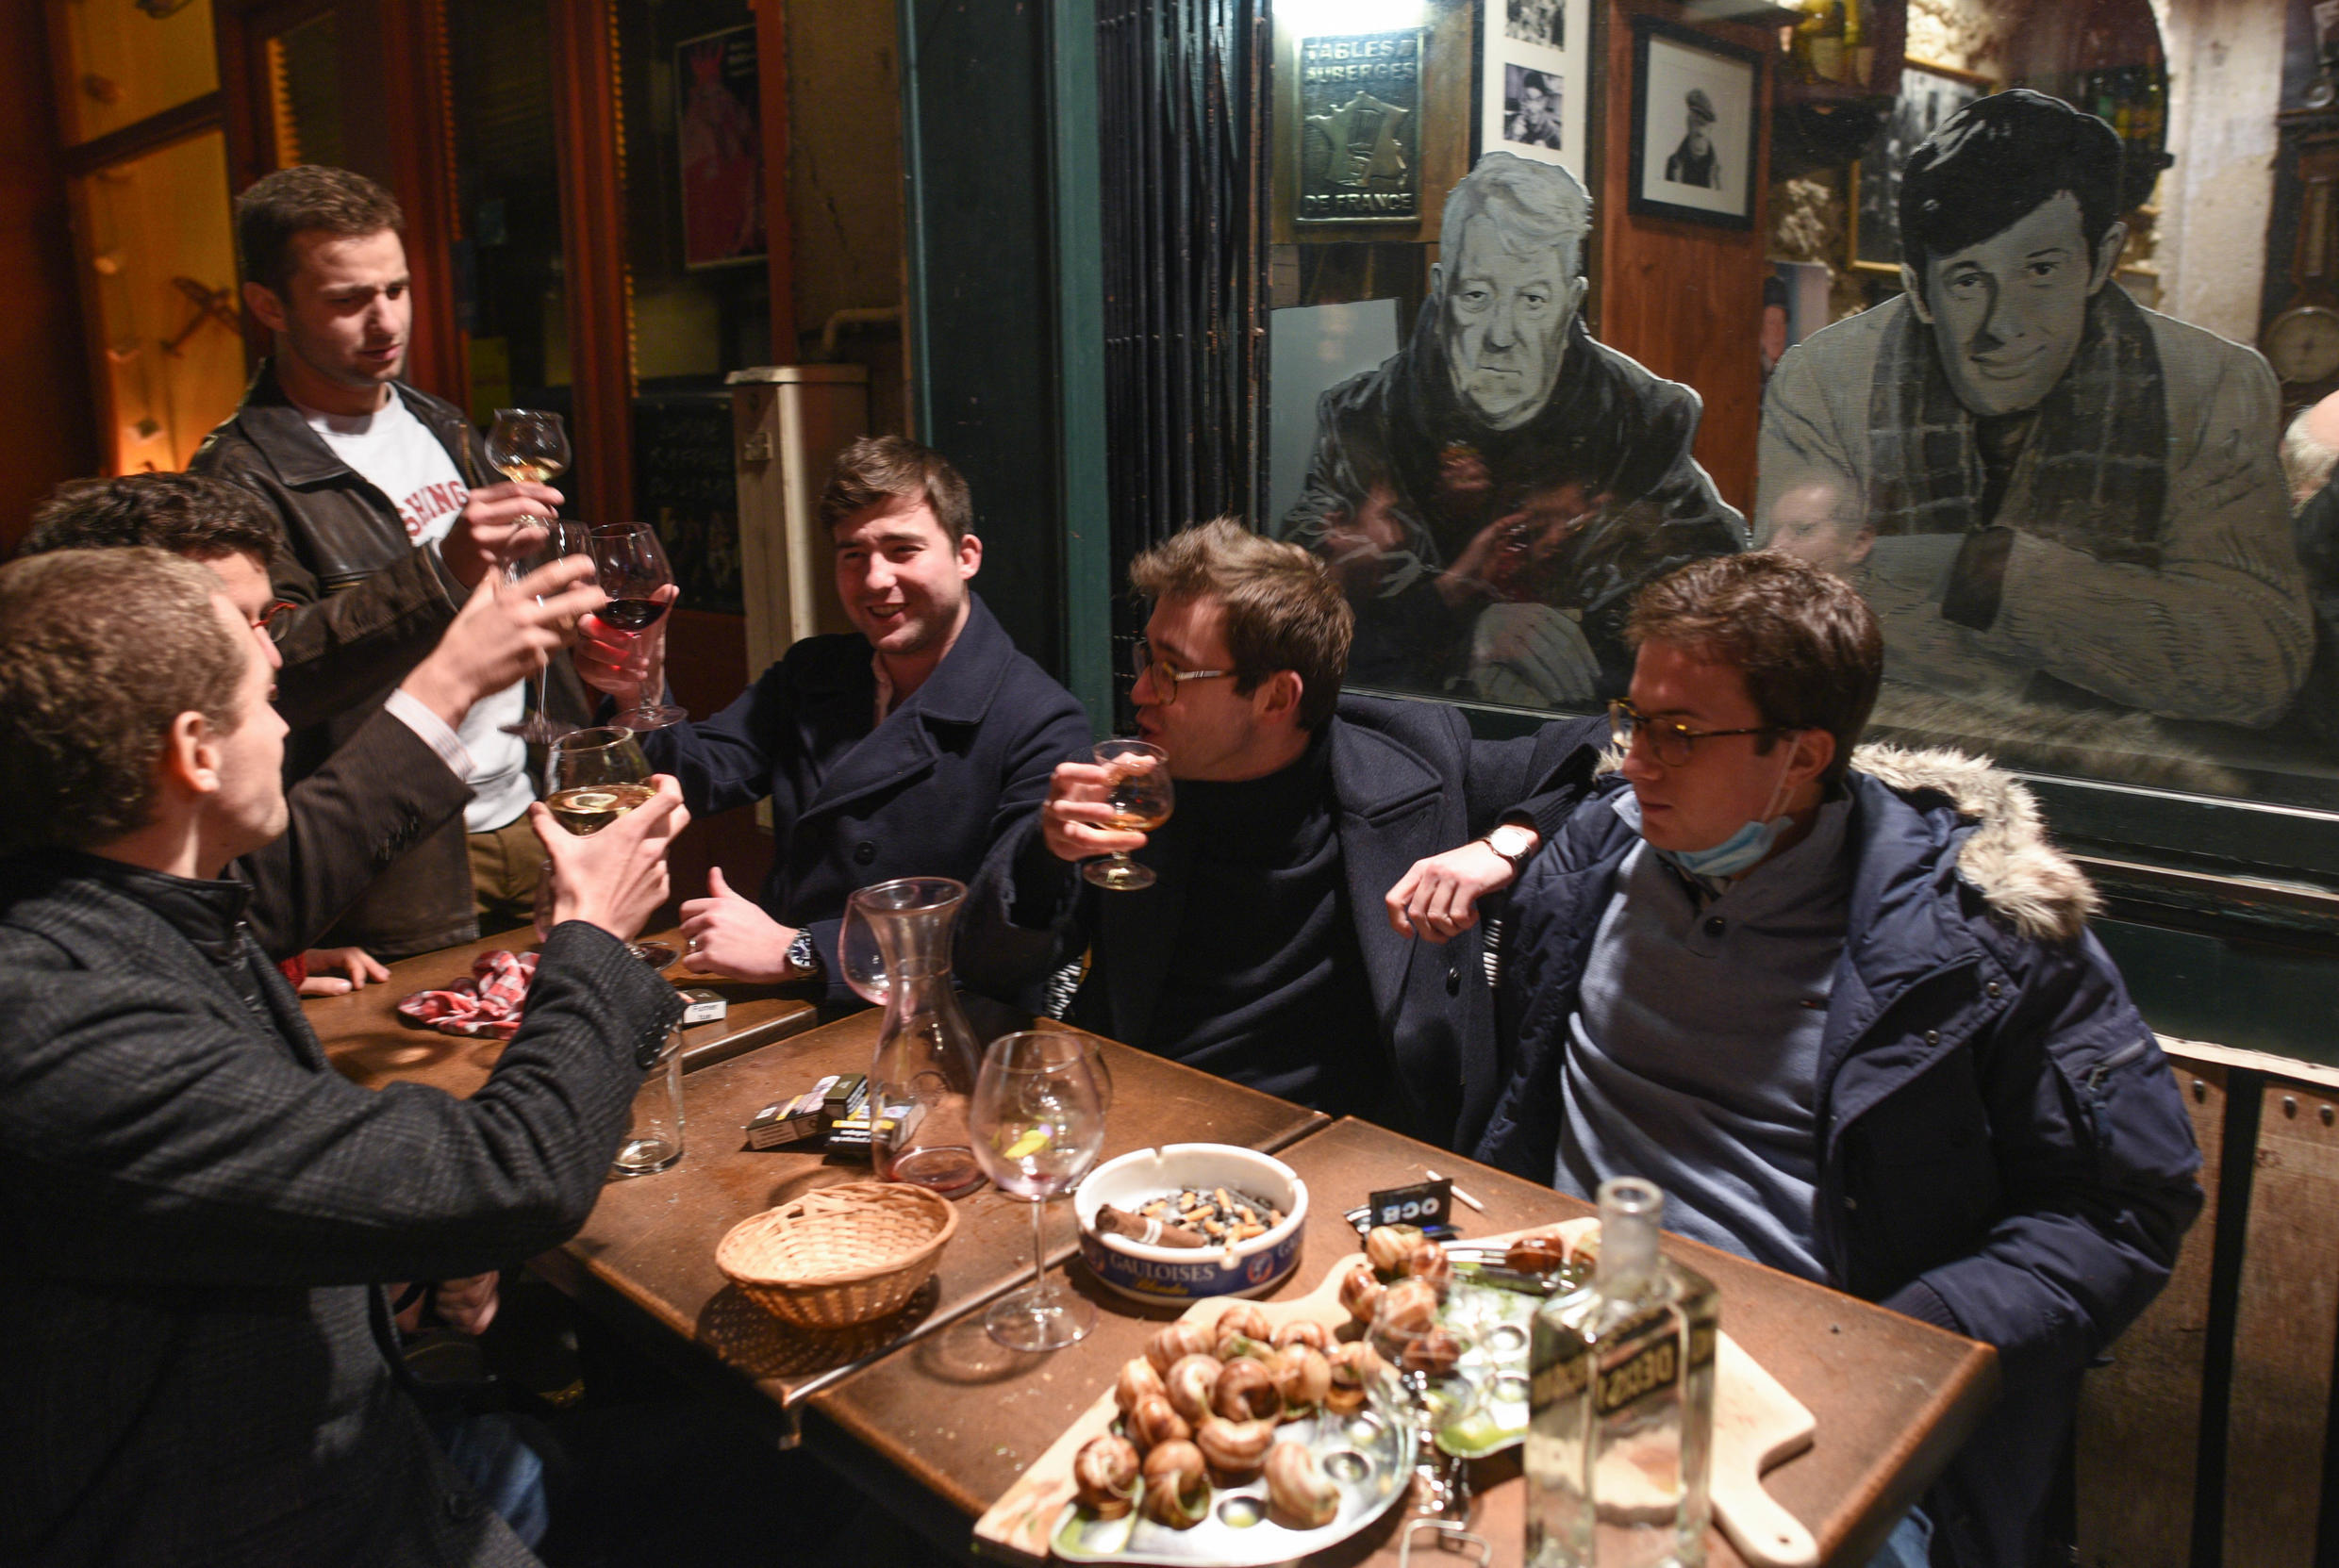 People enjoy a last night out on October 16 in Paris before the Covid curfew comes into effect.